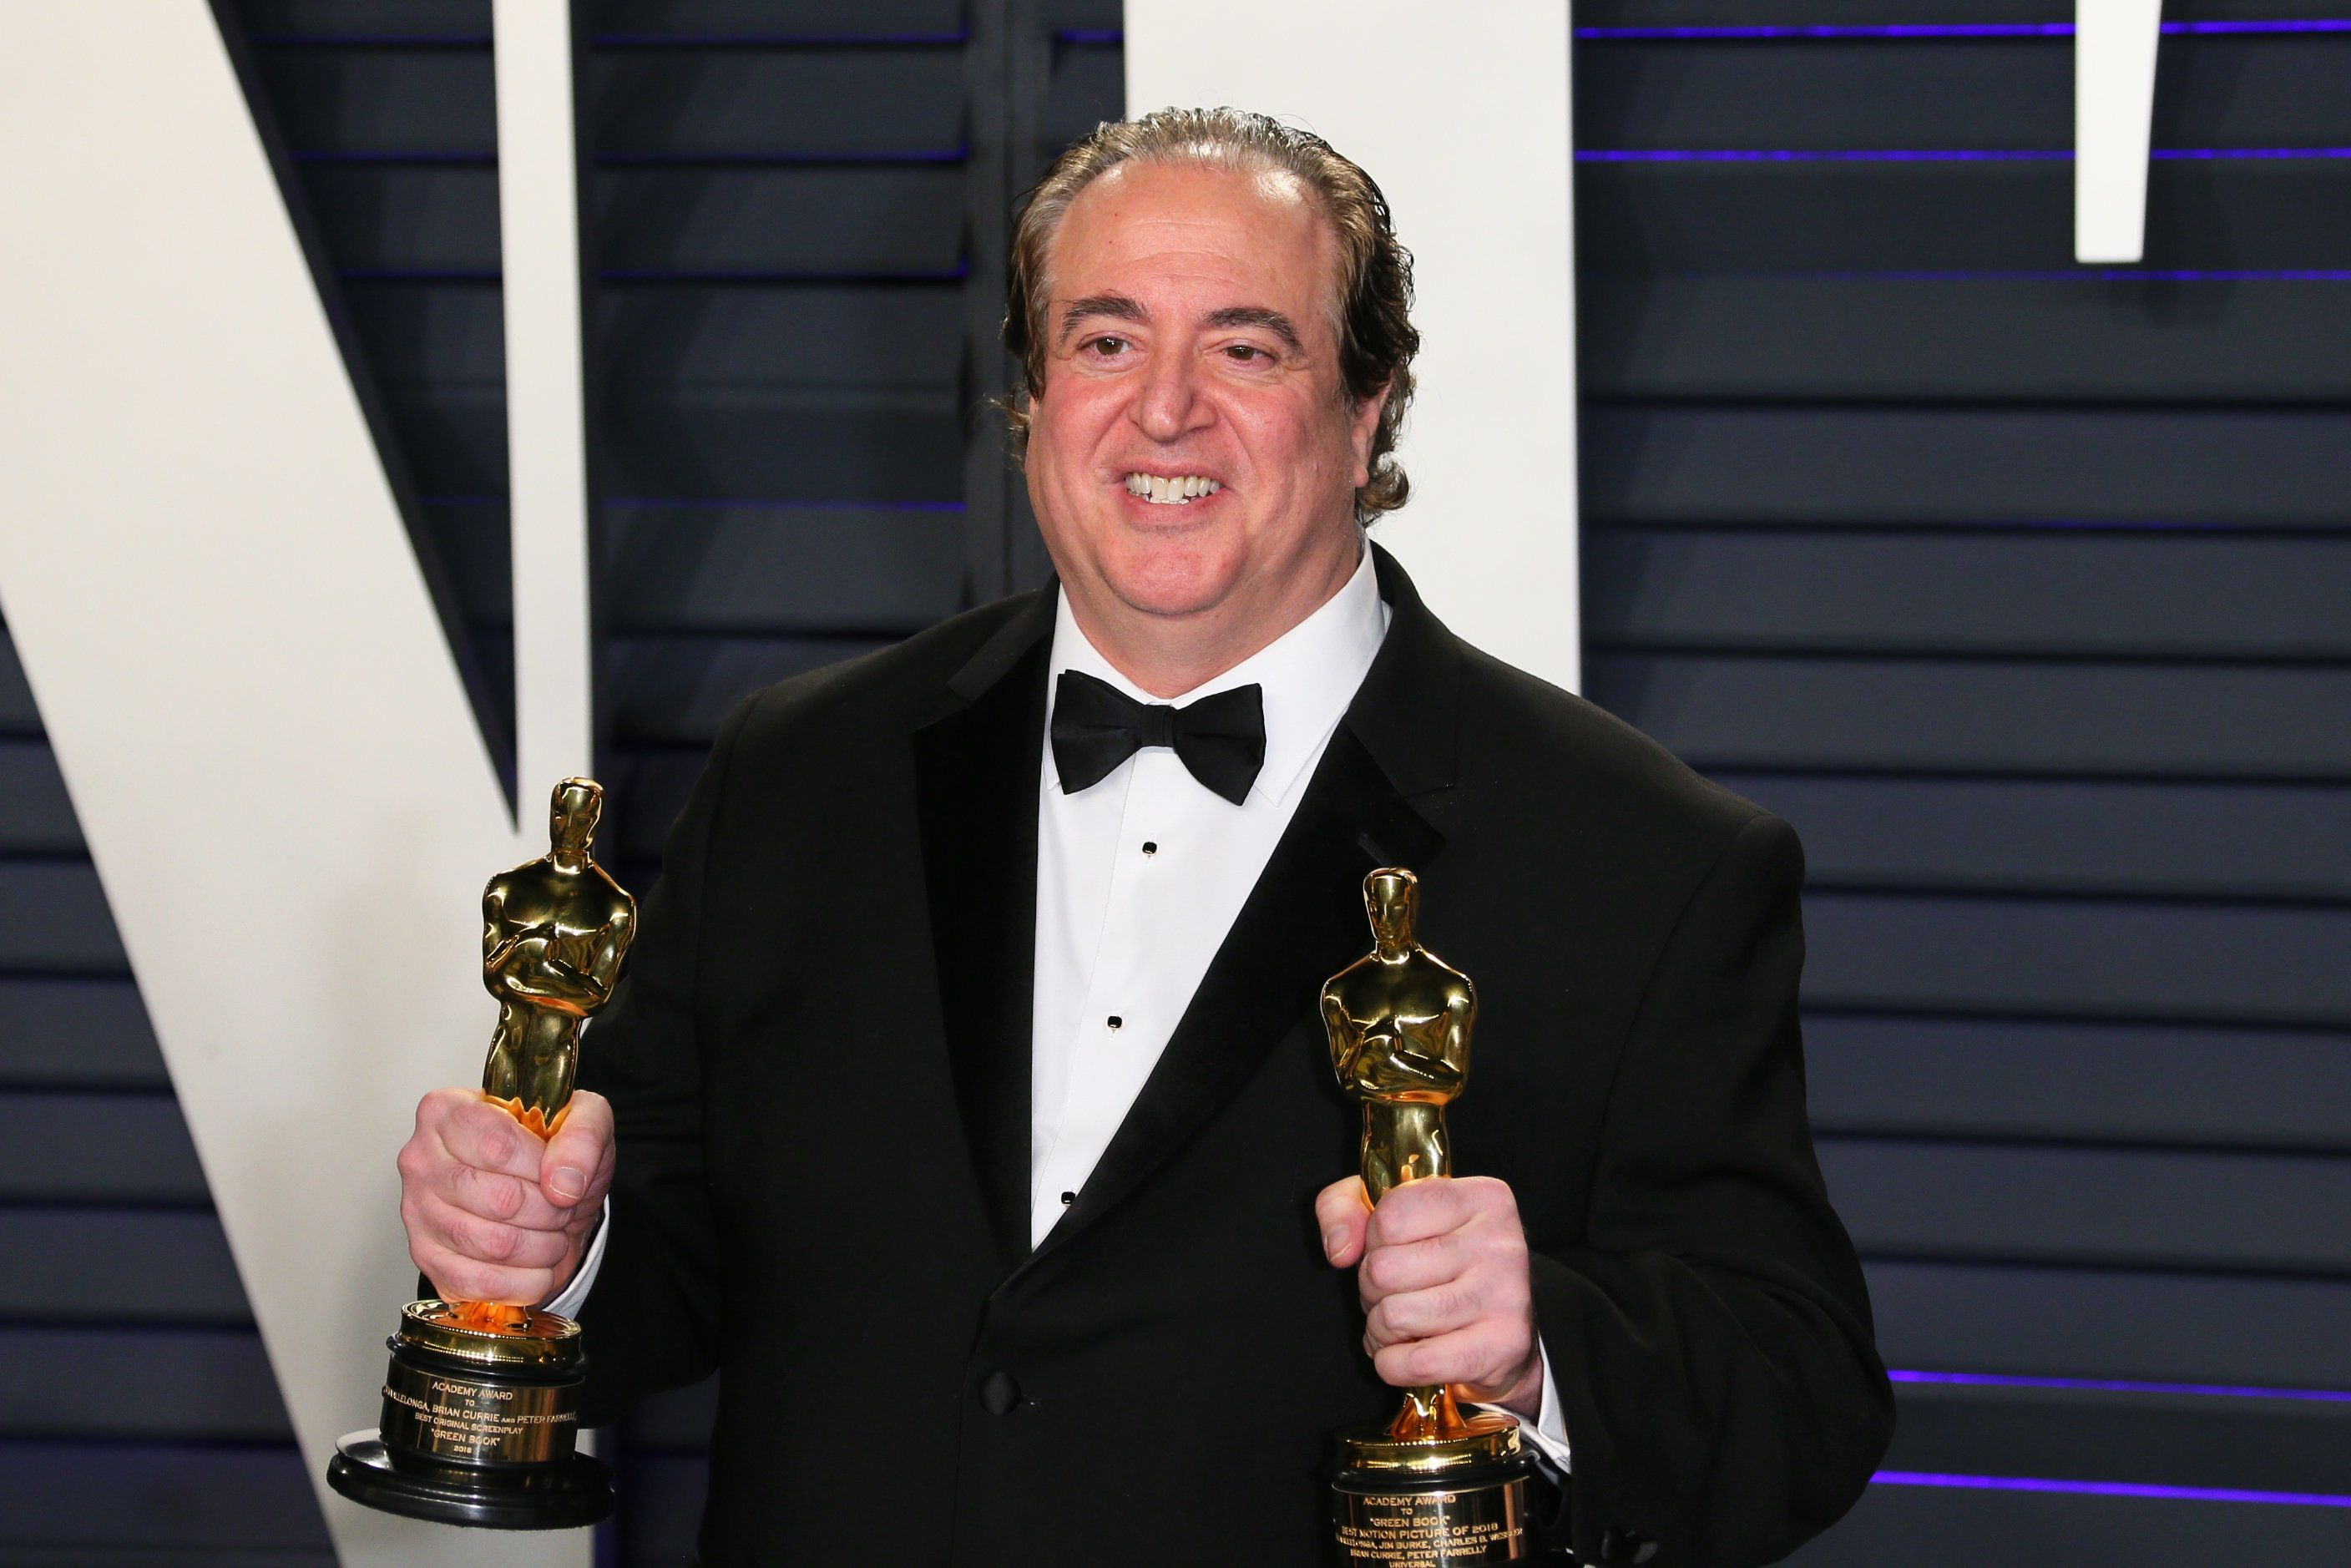 US producer Nick Vallelonga poses with the Oscars for Best Picture and Best Original Screenplay for 'Green Book' as he attends the 2019 Vanity Fair Oscar Party following the 91st Academy Awards at The Wallis Annenberg Center for the Performing Arts in Beverly Hills on February 24, 2019. (Photo by JB Lacroix / AFP)        (Photo credit should read JB LACROIX/AFP/Getty Images)